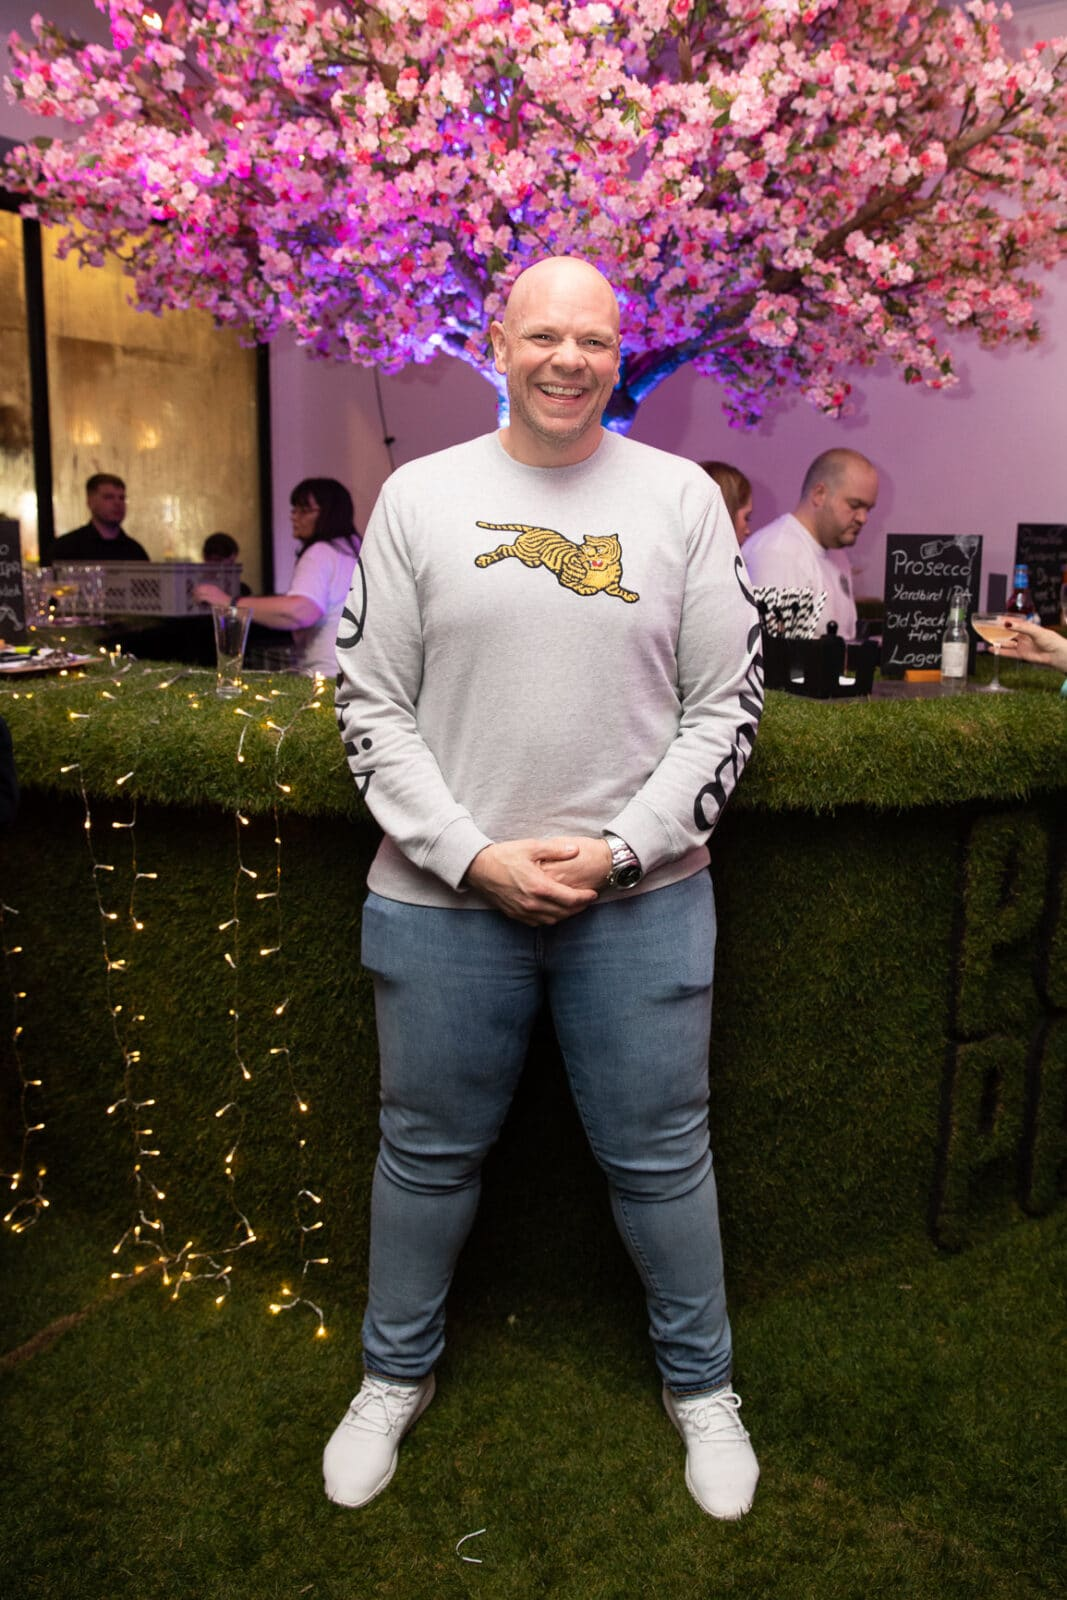 Pub In The Park launch evening hosted by Tom Kerridge, featuring Twilight Trees' pink blossom trees